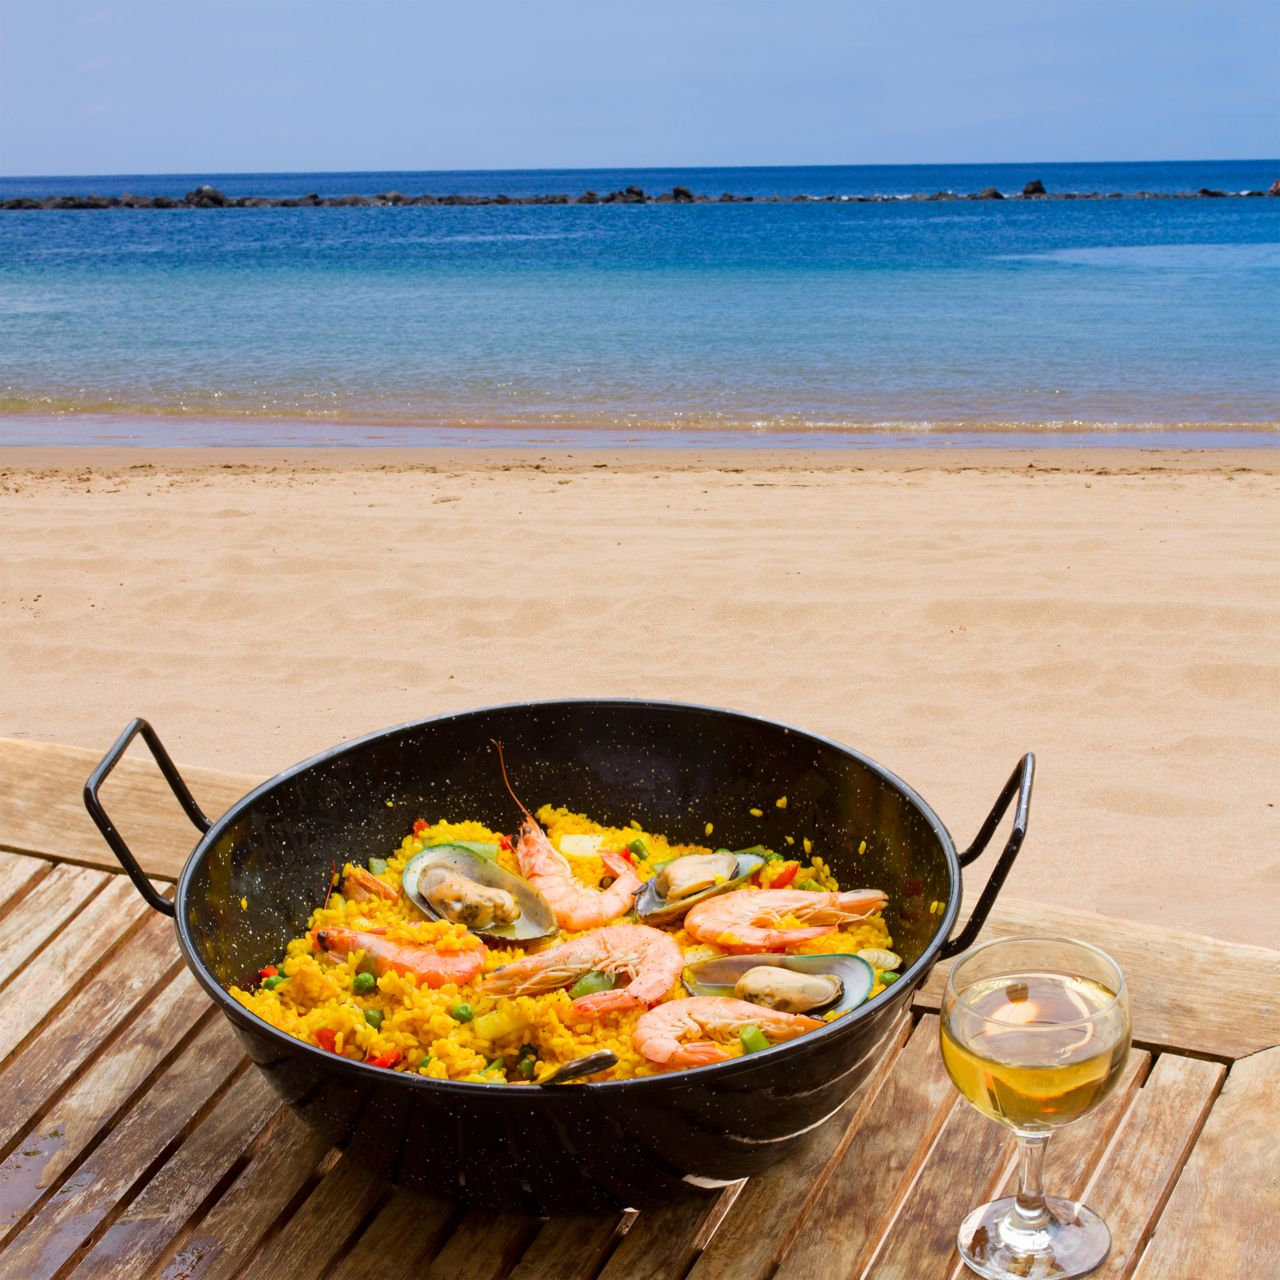 Top Restaurants to eat Paella in Barcelona